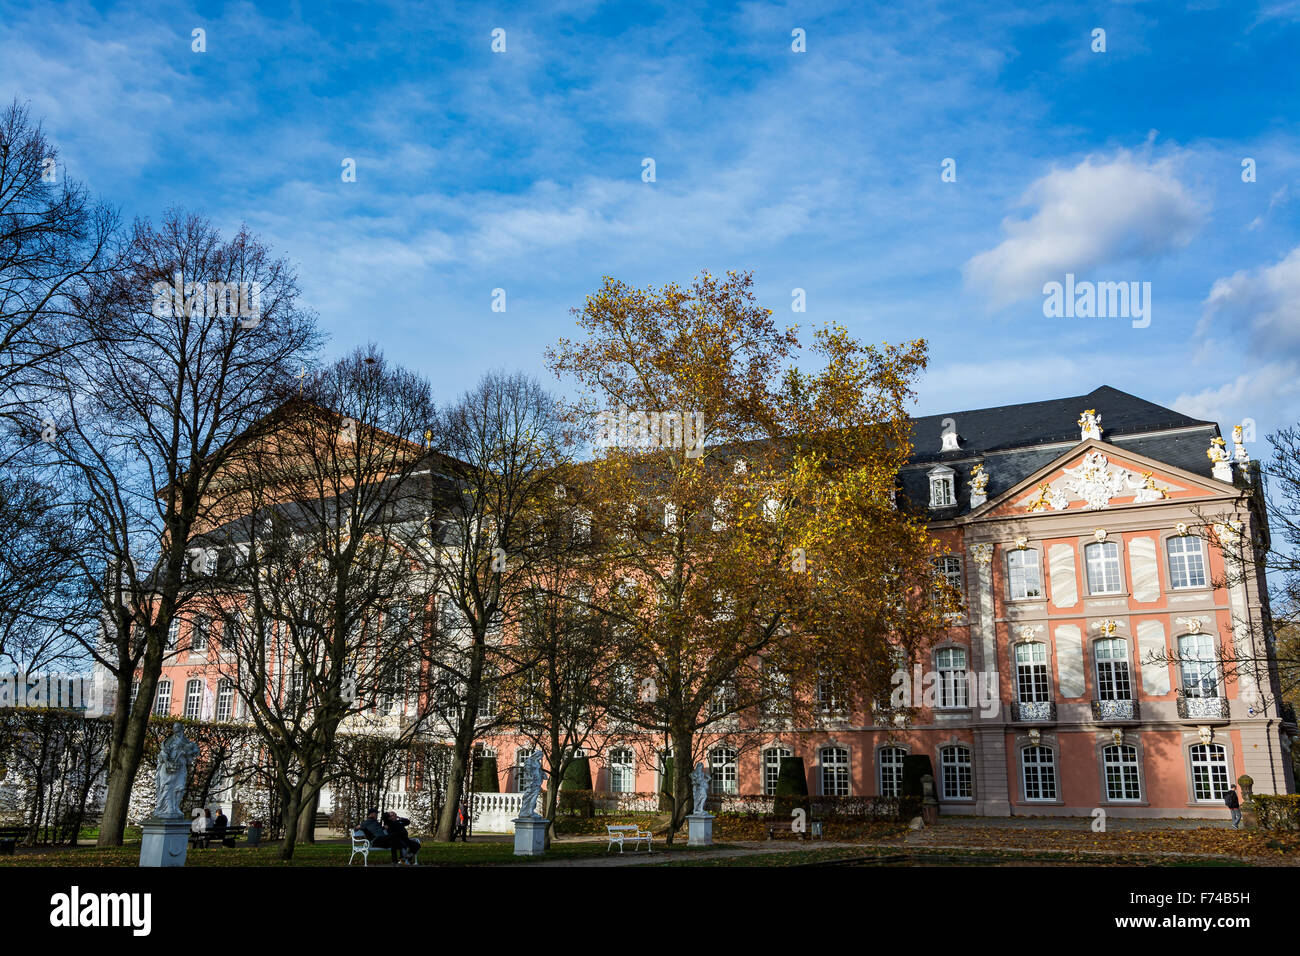 Electoral Palace in Trier in autumn, Germany - Stock Image